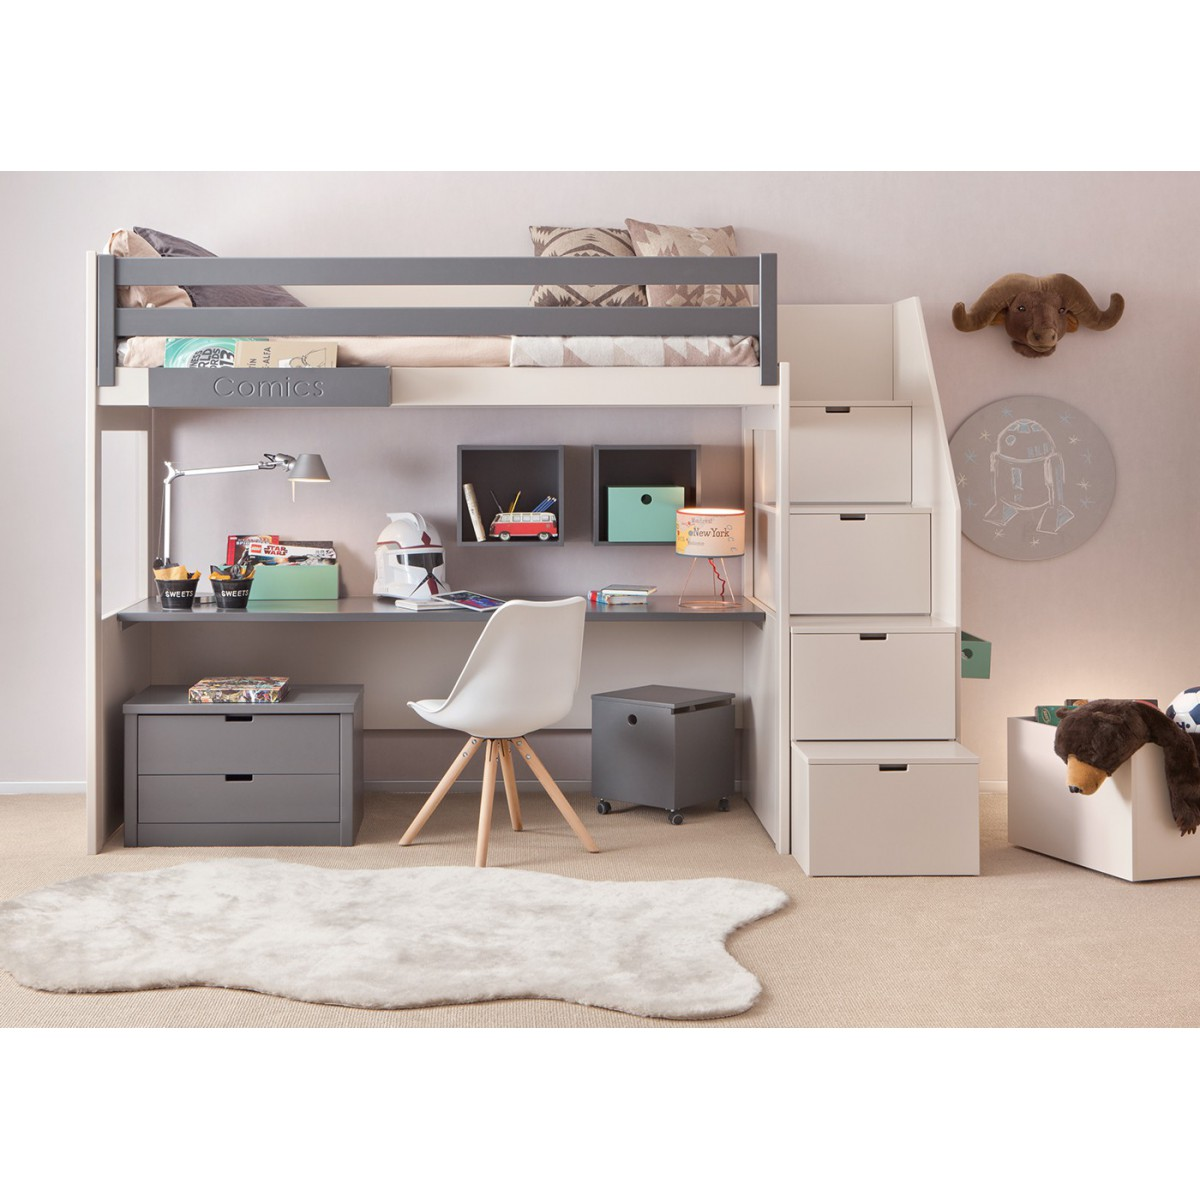 Chambre design sp cial ados juniors sign for Organisation chambre enfant